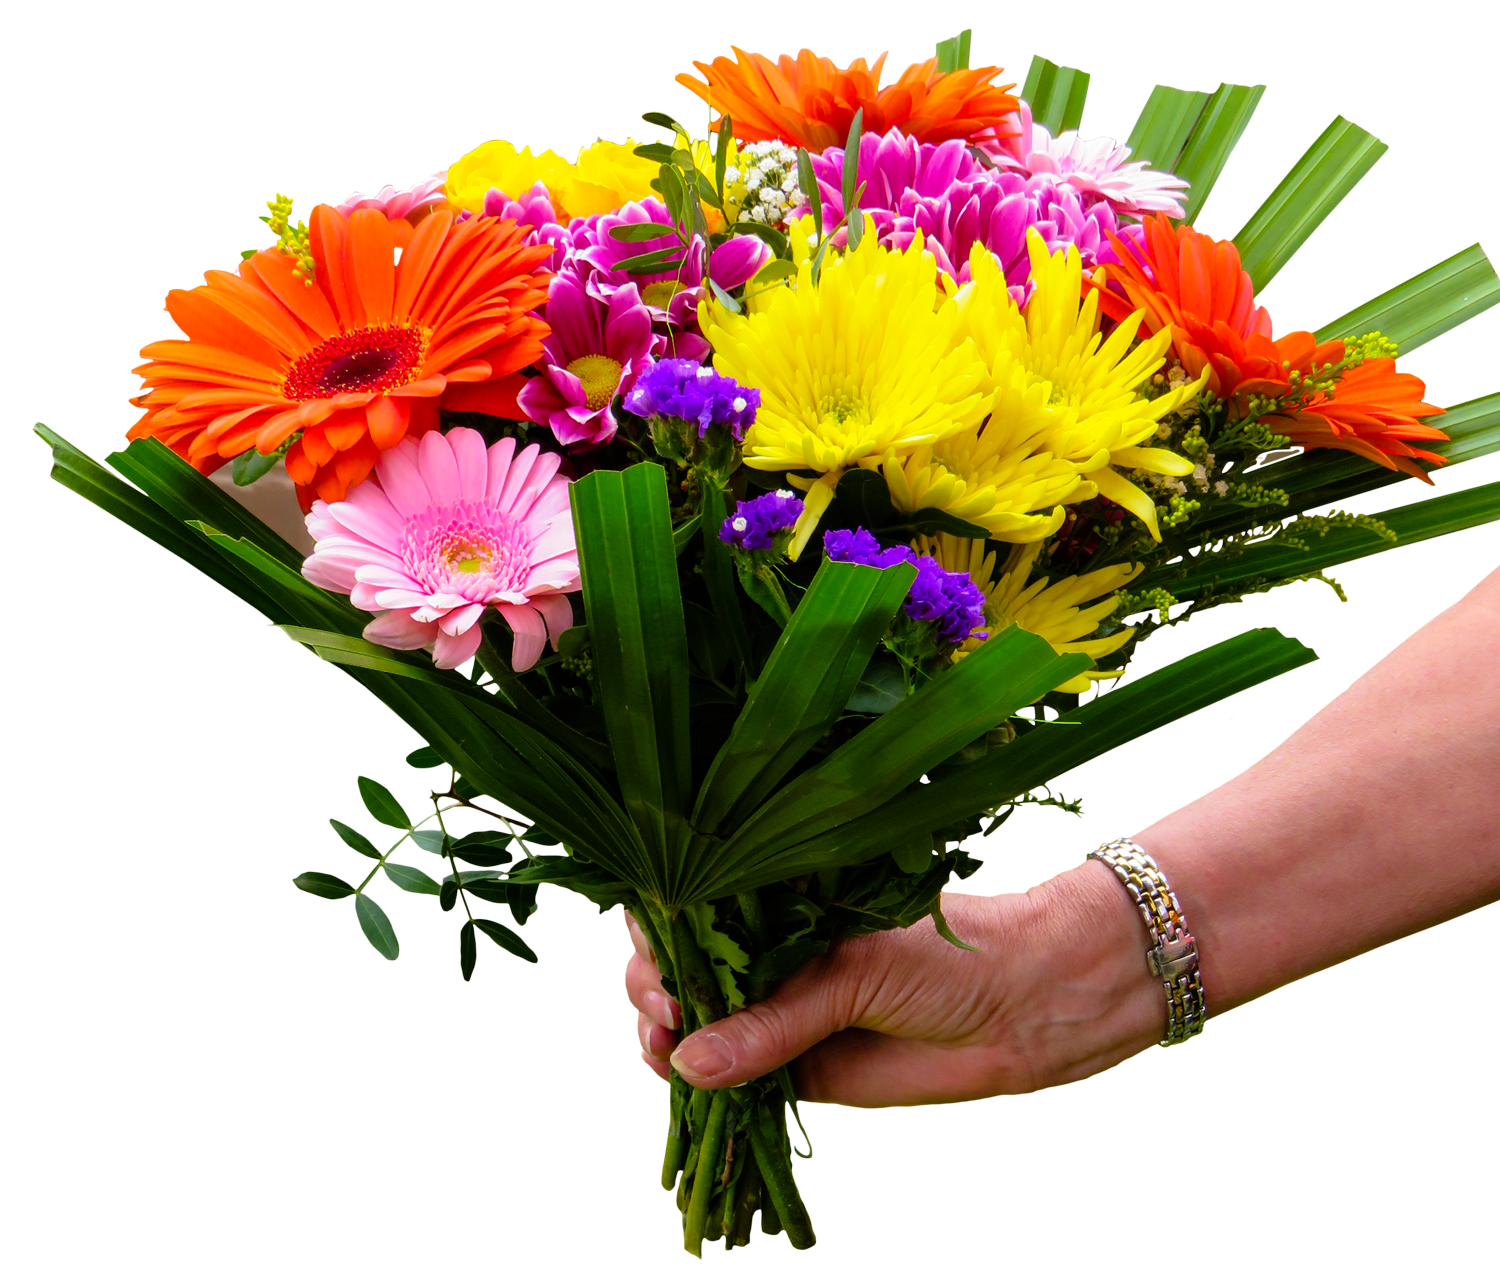 flower bouquet with hand png transparent image #34074